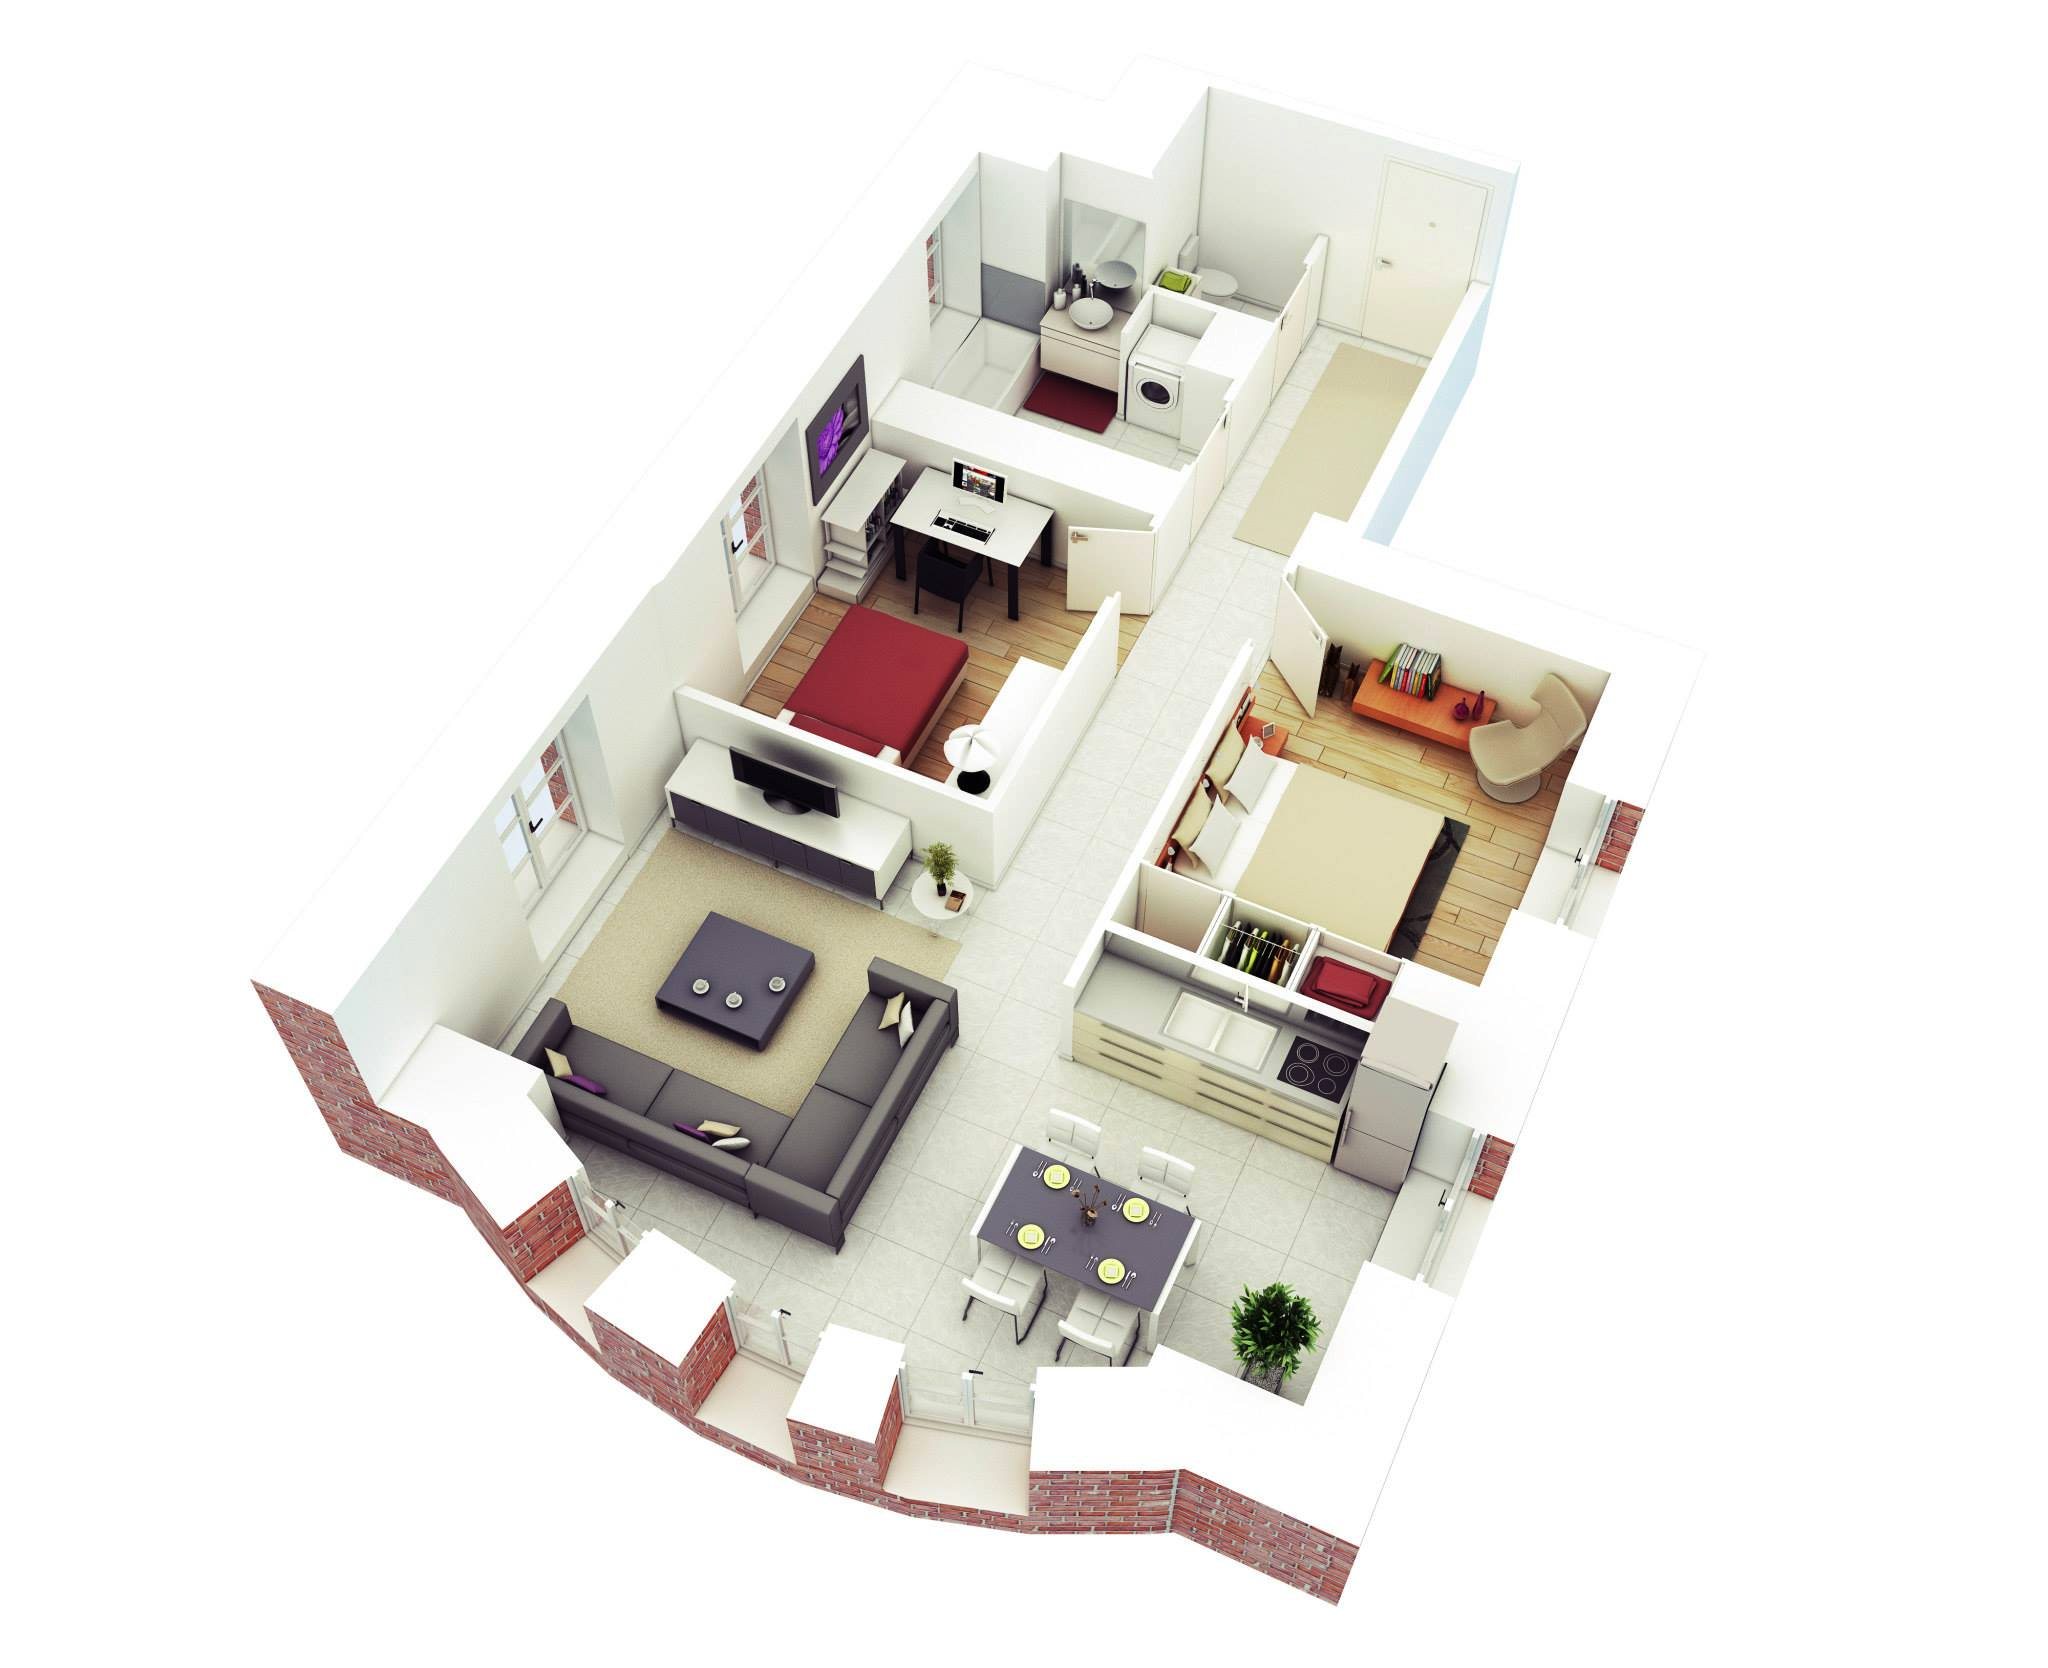 25 more 2 bedroom 3d floor plans - Home Design House Plans